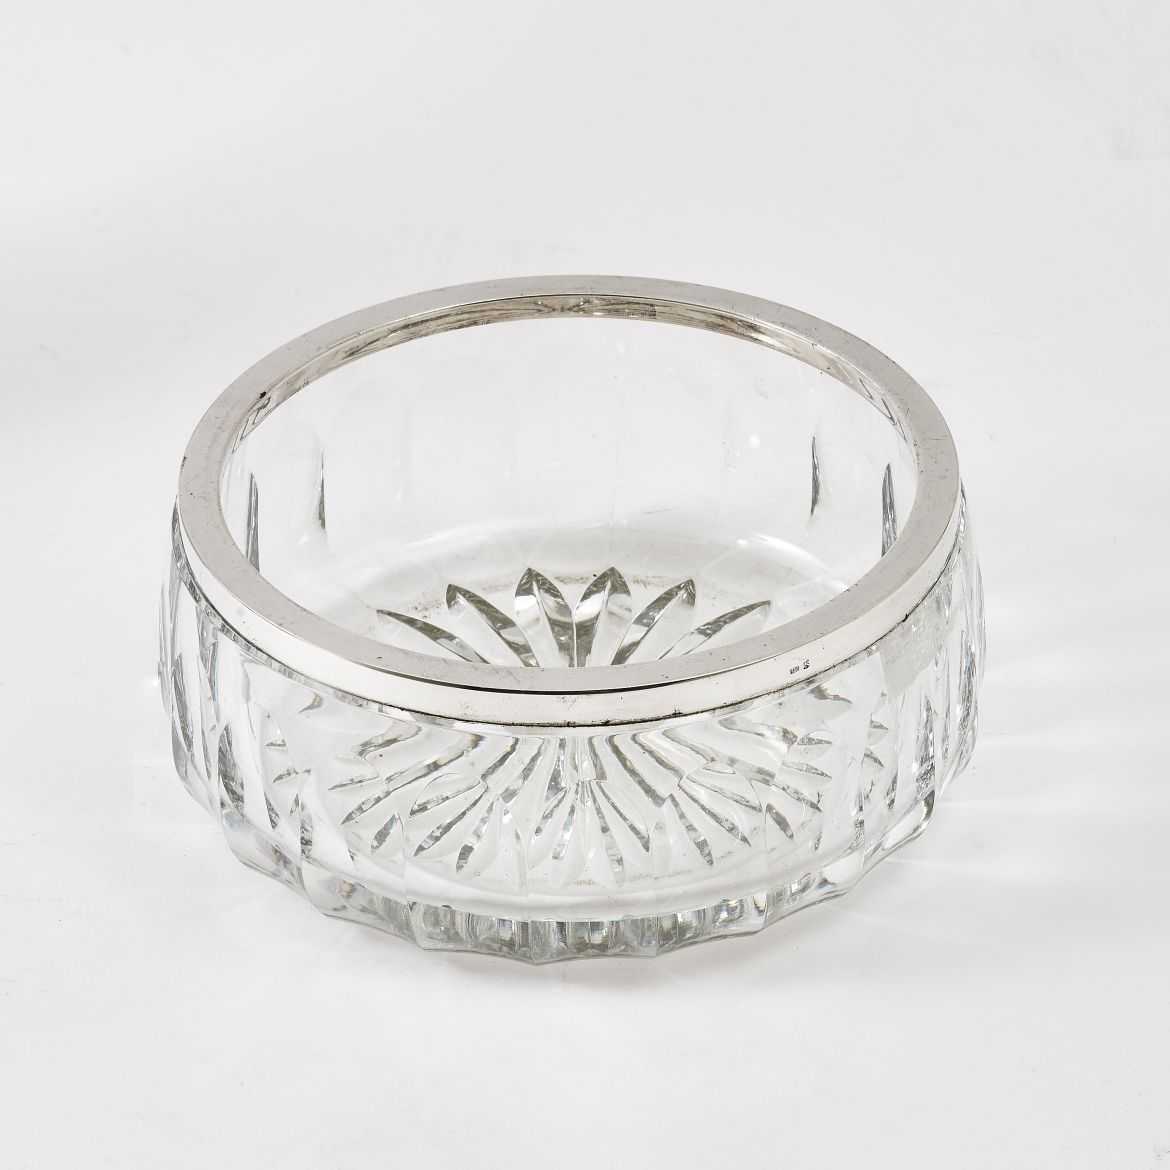 Facet Cut Crystal Bowl